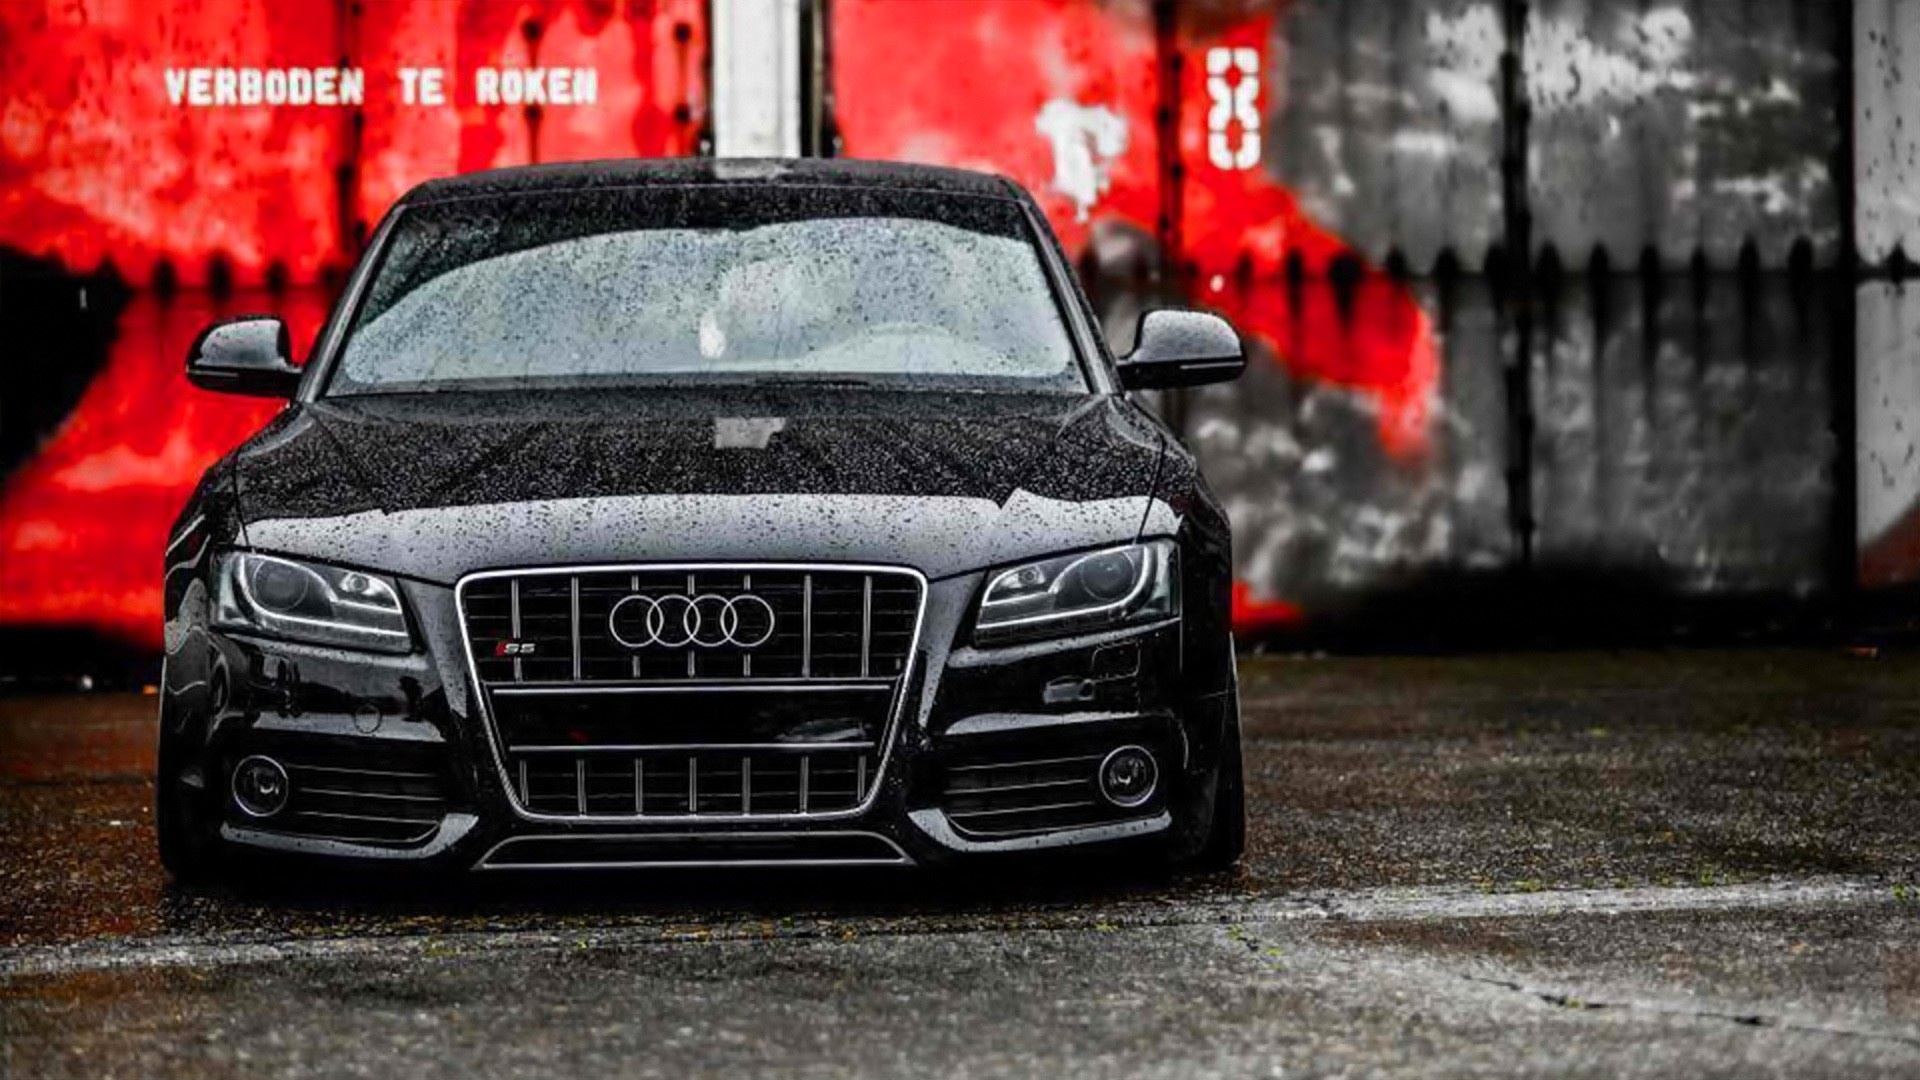 Audi RS7 Wallpaper and Background Image  1680x1050  ID